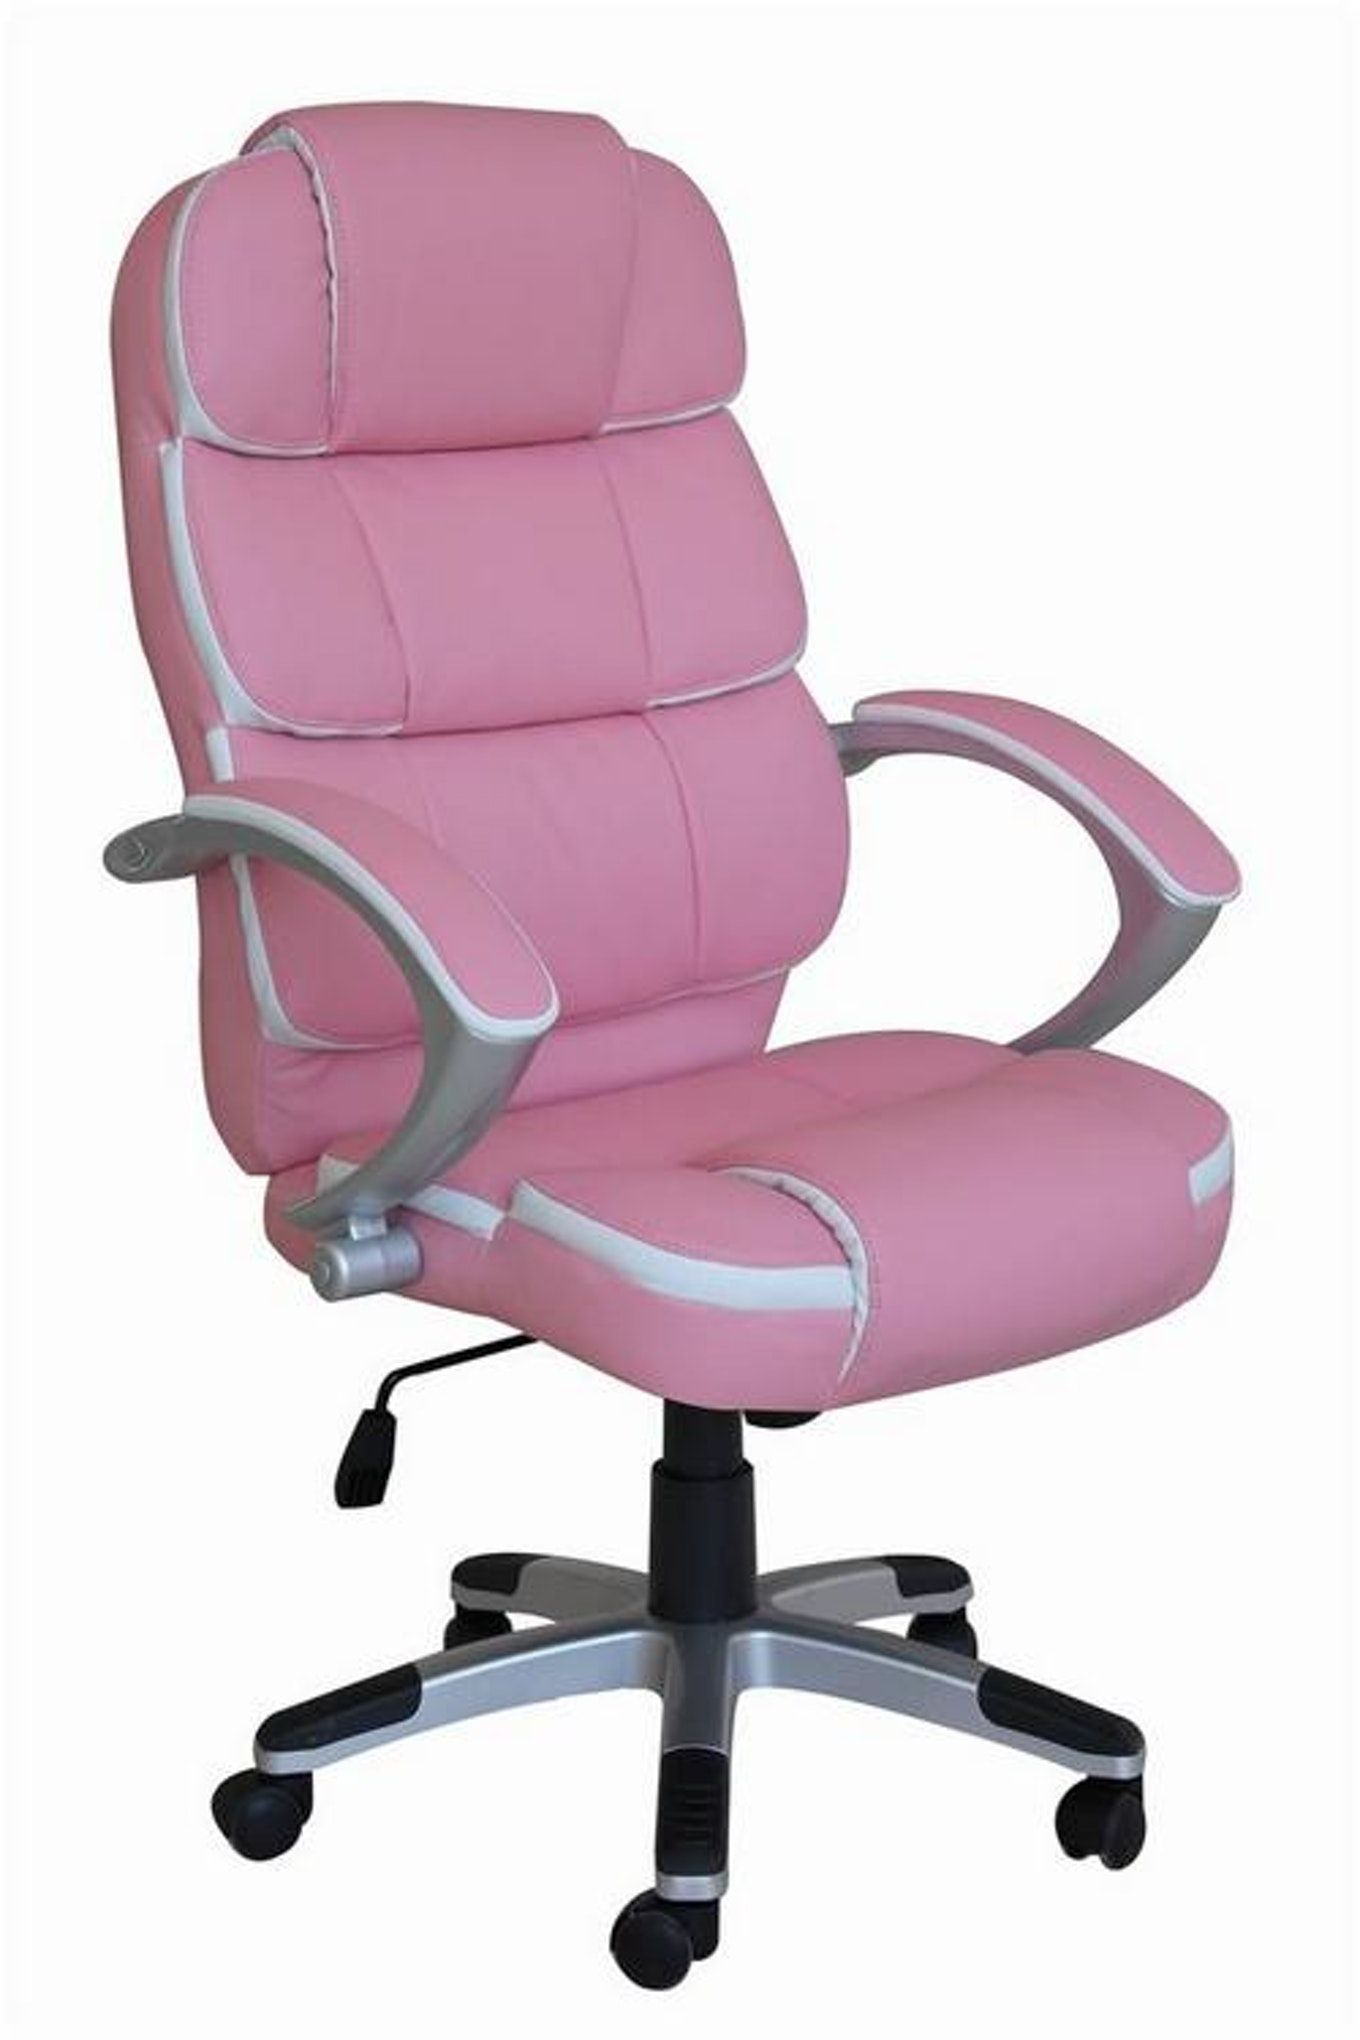 with students no desk blush chair in budgetmidrange ideal chairs genuine and along wheels three gh magnificent pink